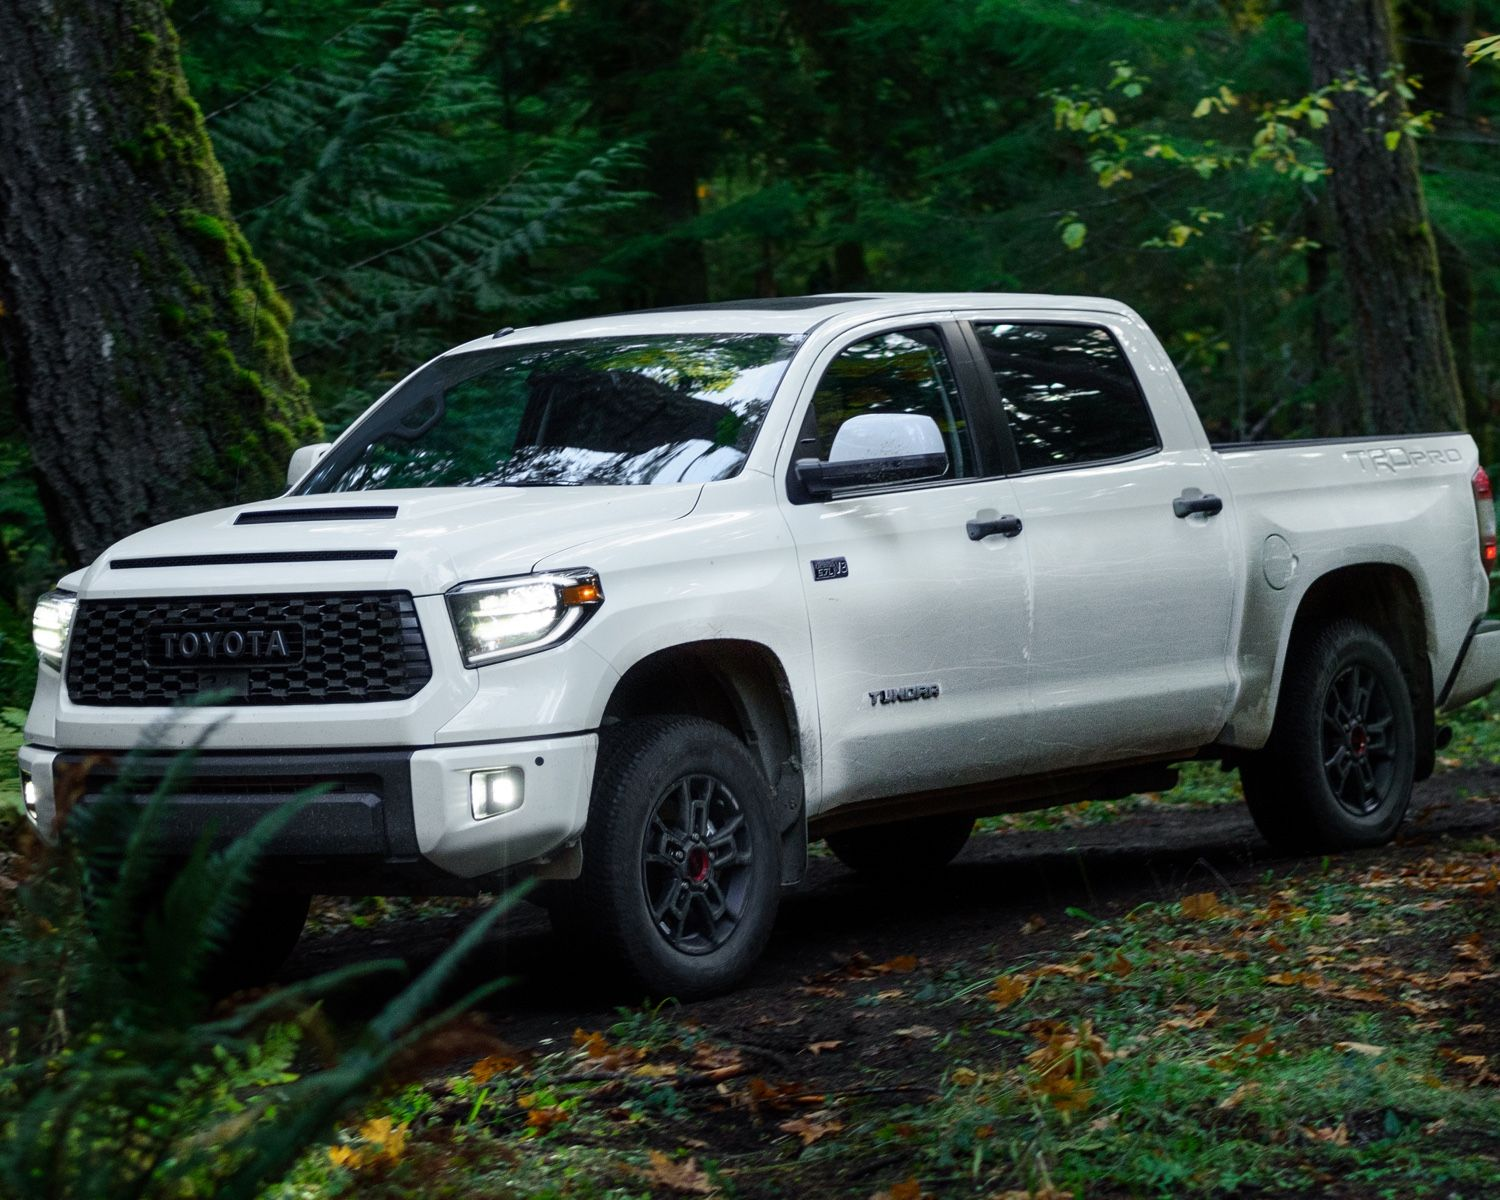 Tundra TRD Pro shown in Super White